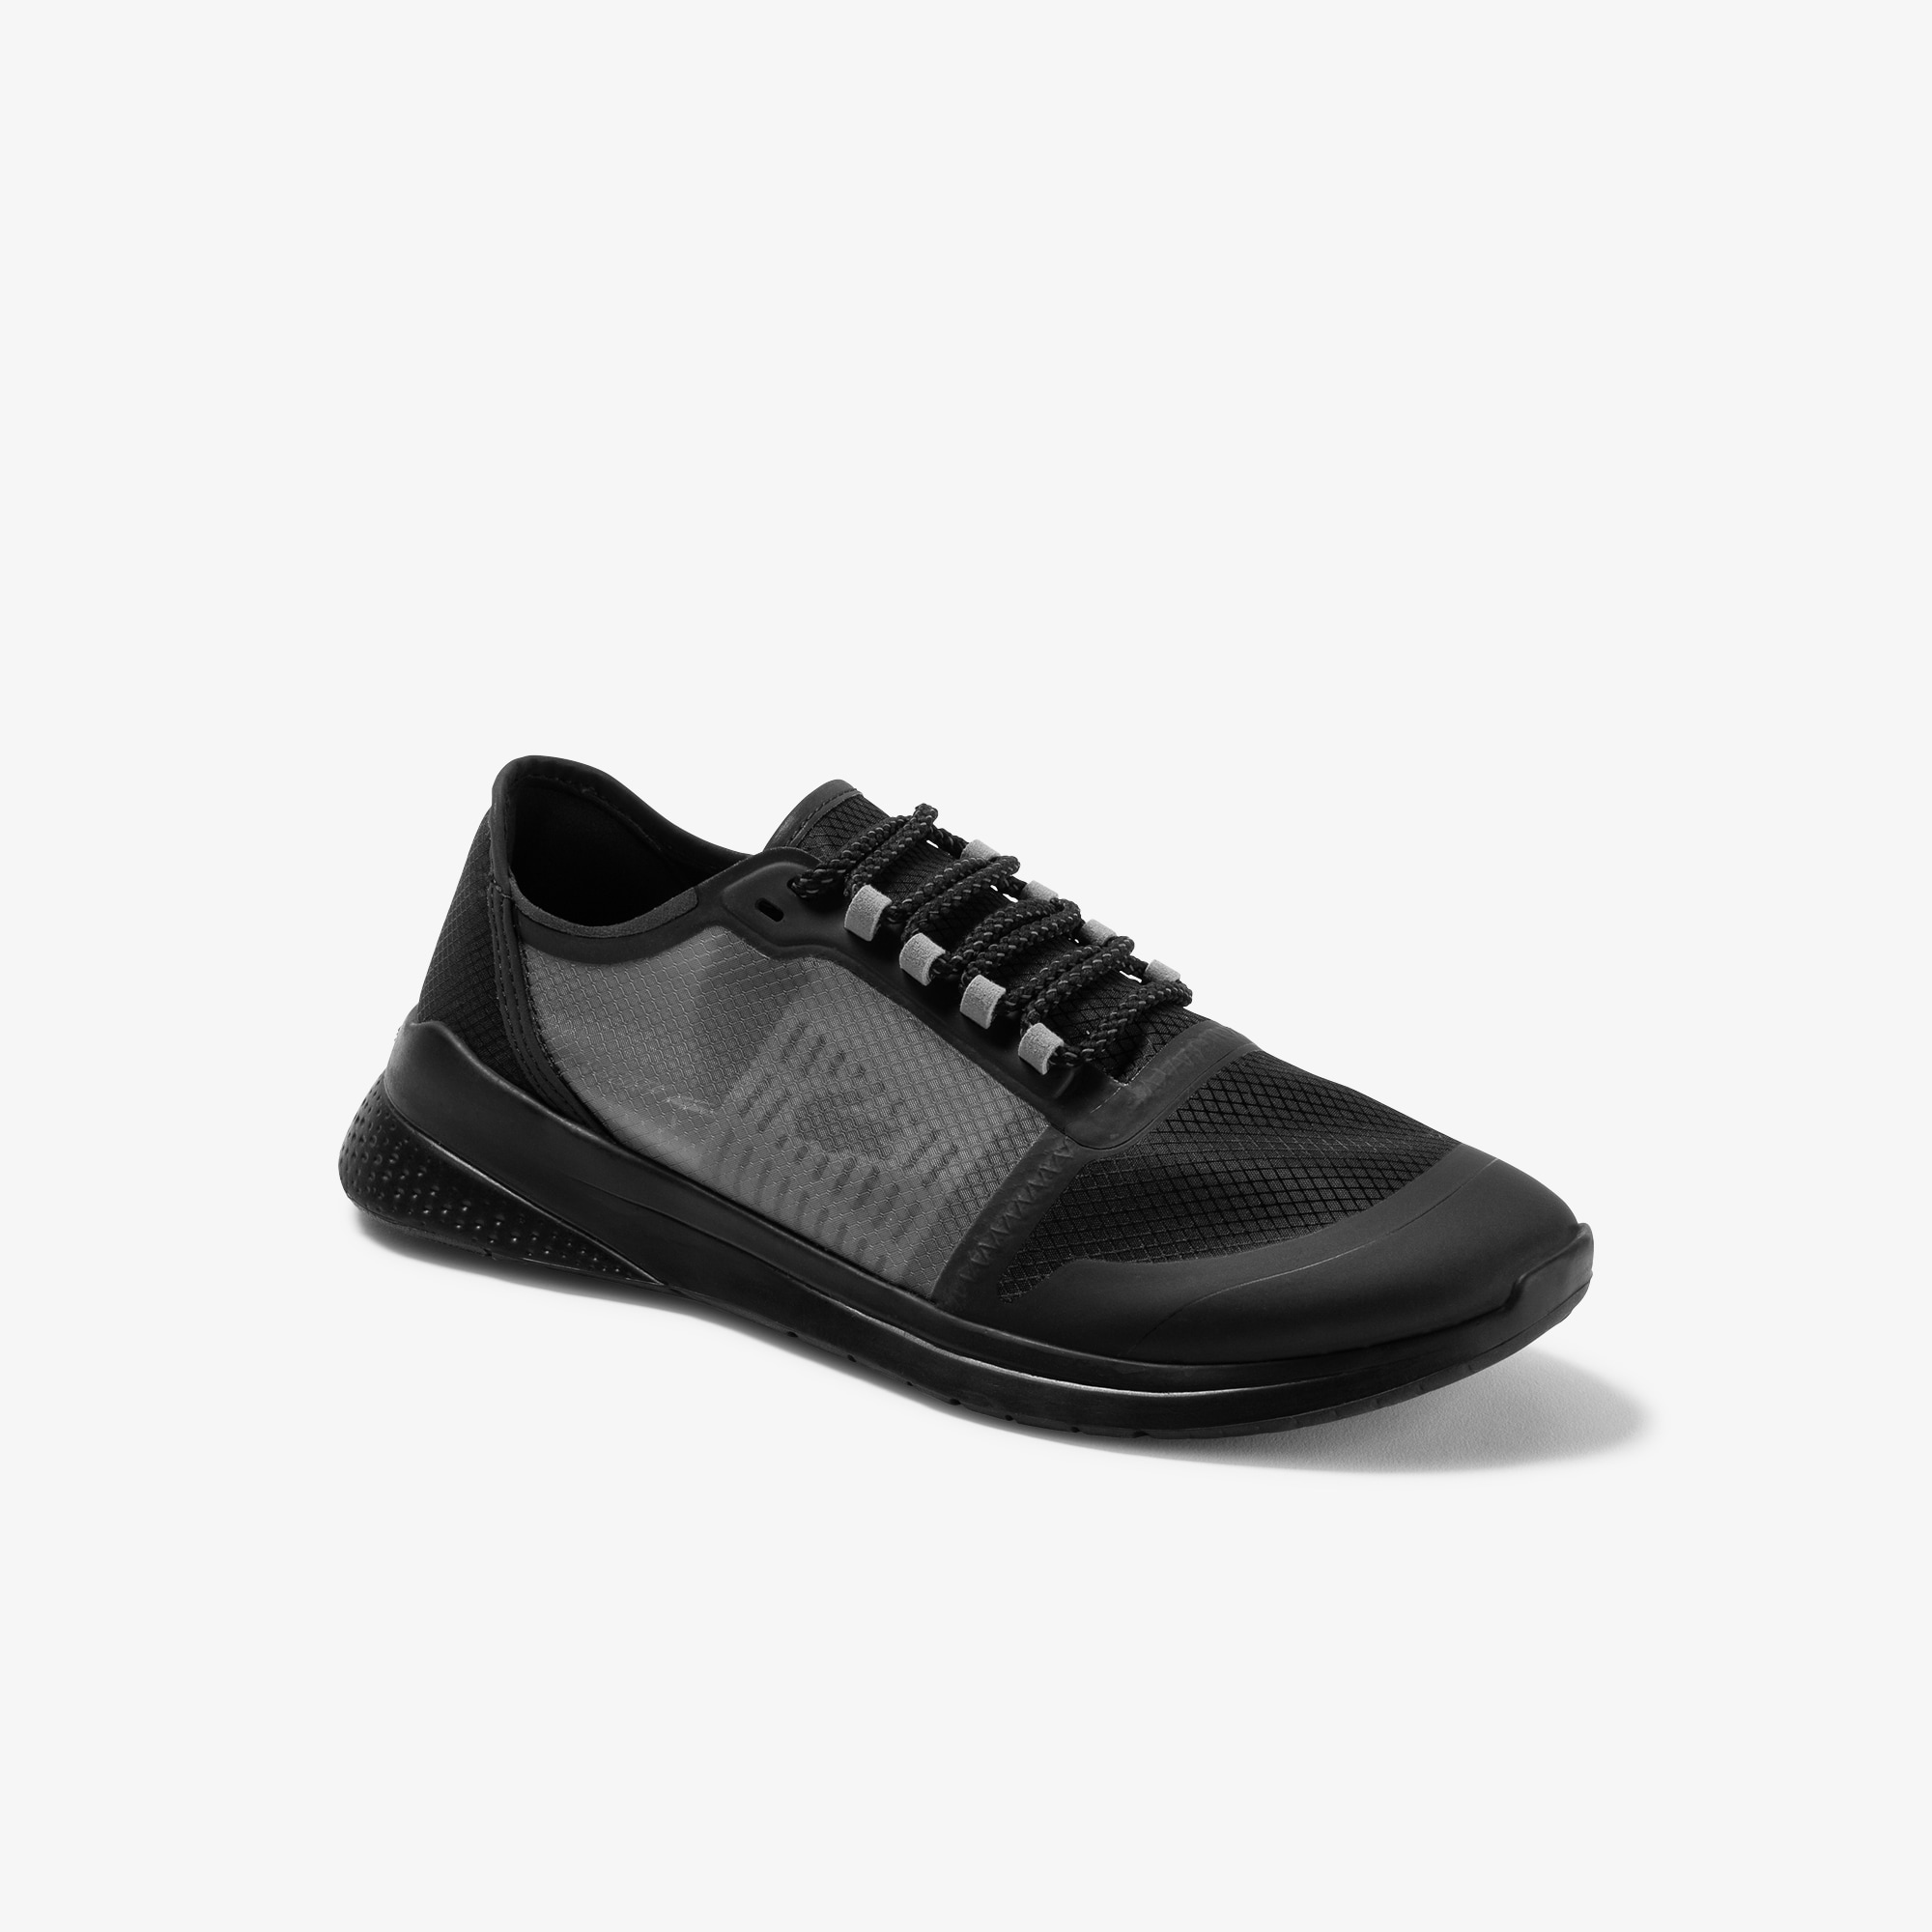 Herren Sneakers LT FIT aus Textil und Synthetik